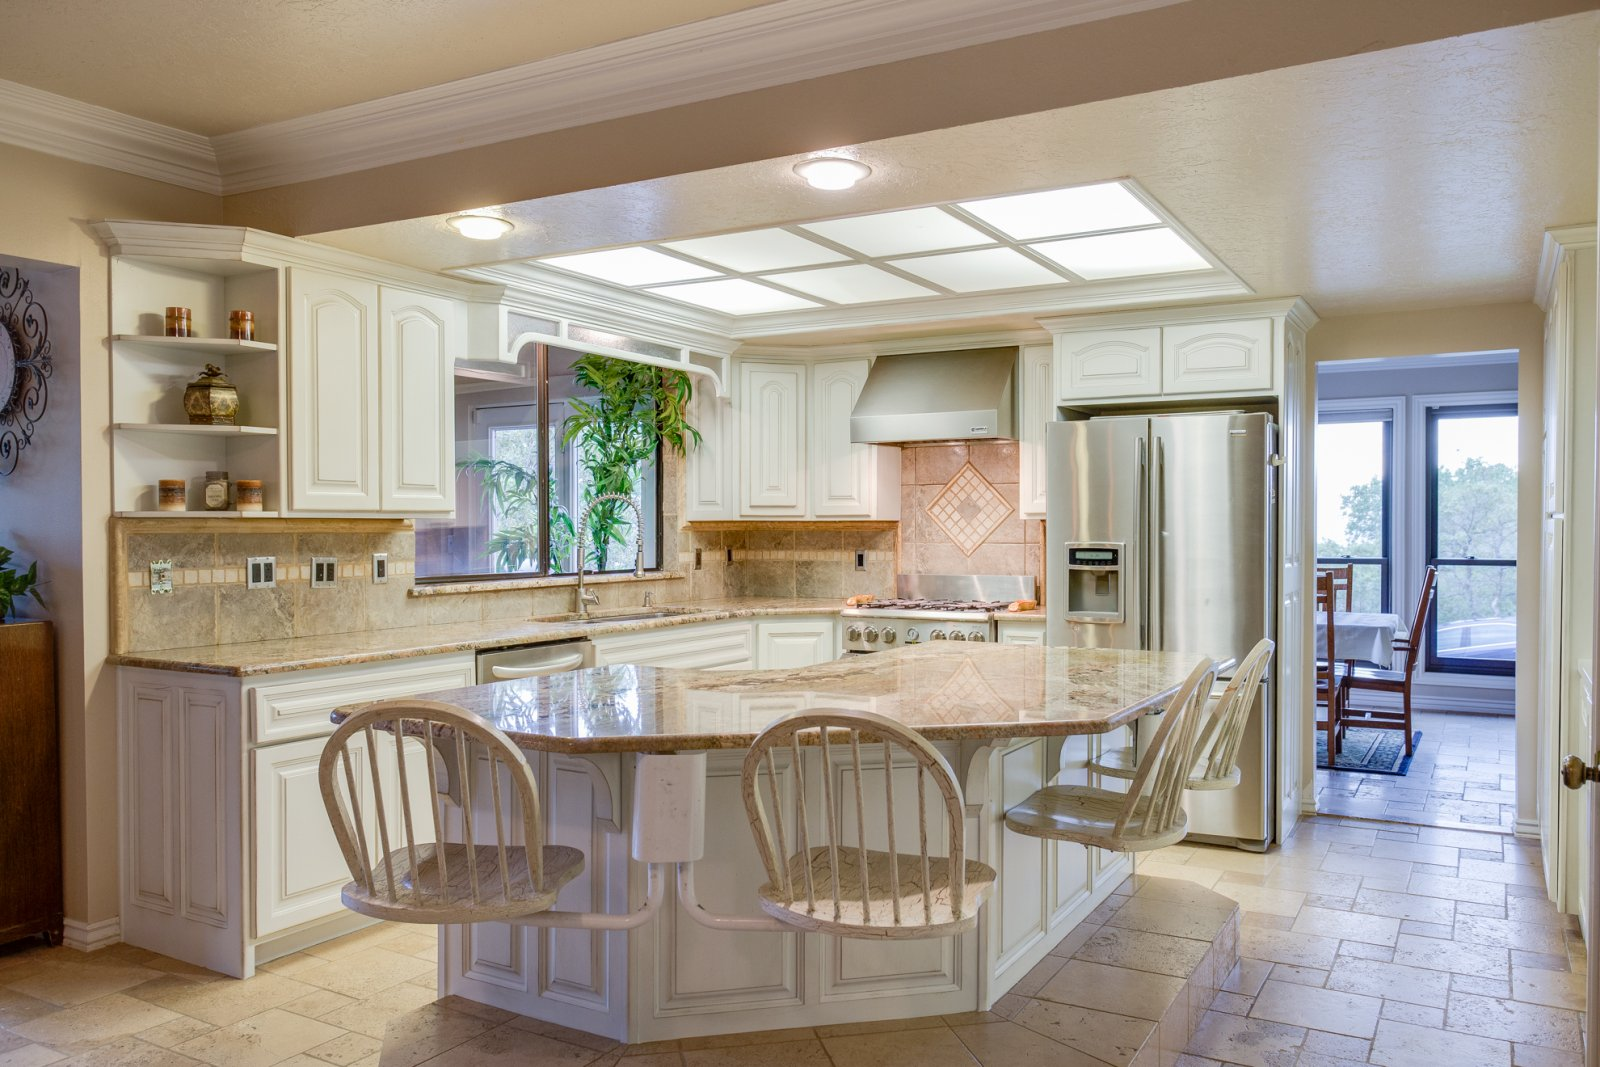 Kitchen in the Ogden Utah Seller Financing Homes. Call or go to our website for more info.